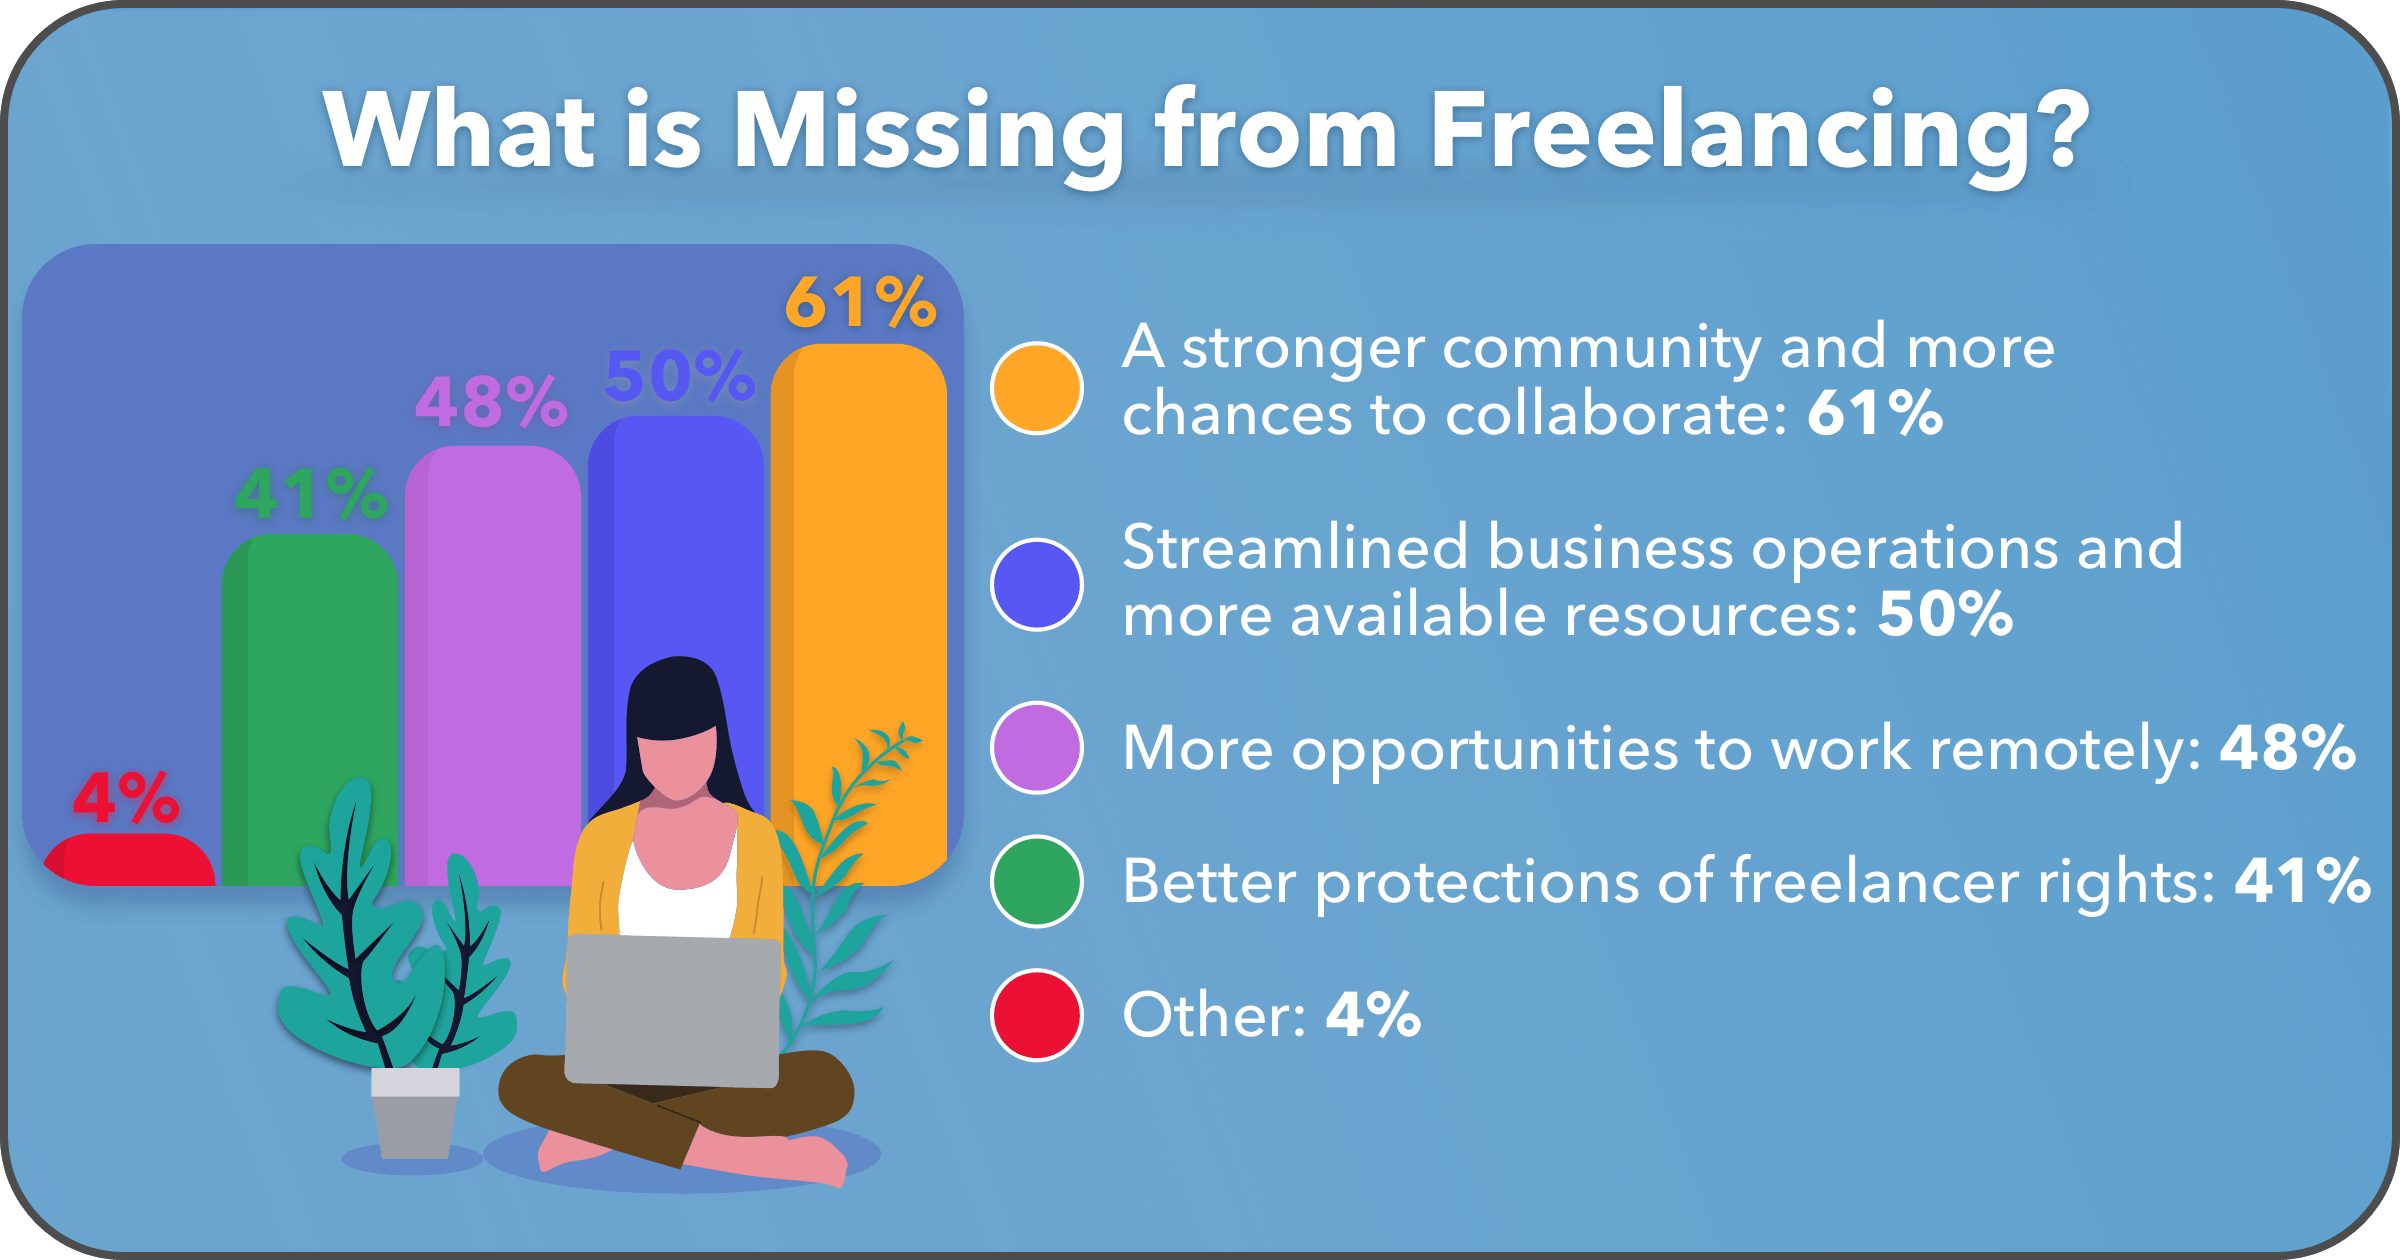 What Freelancers Want More of in the Future